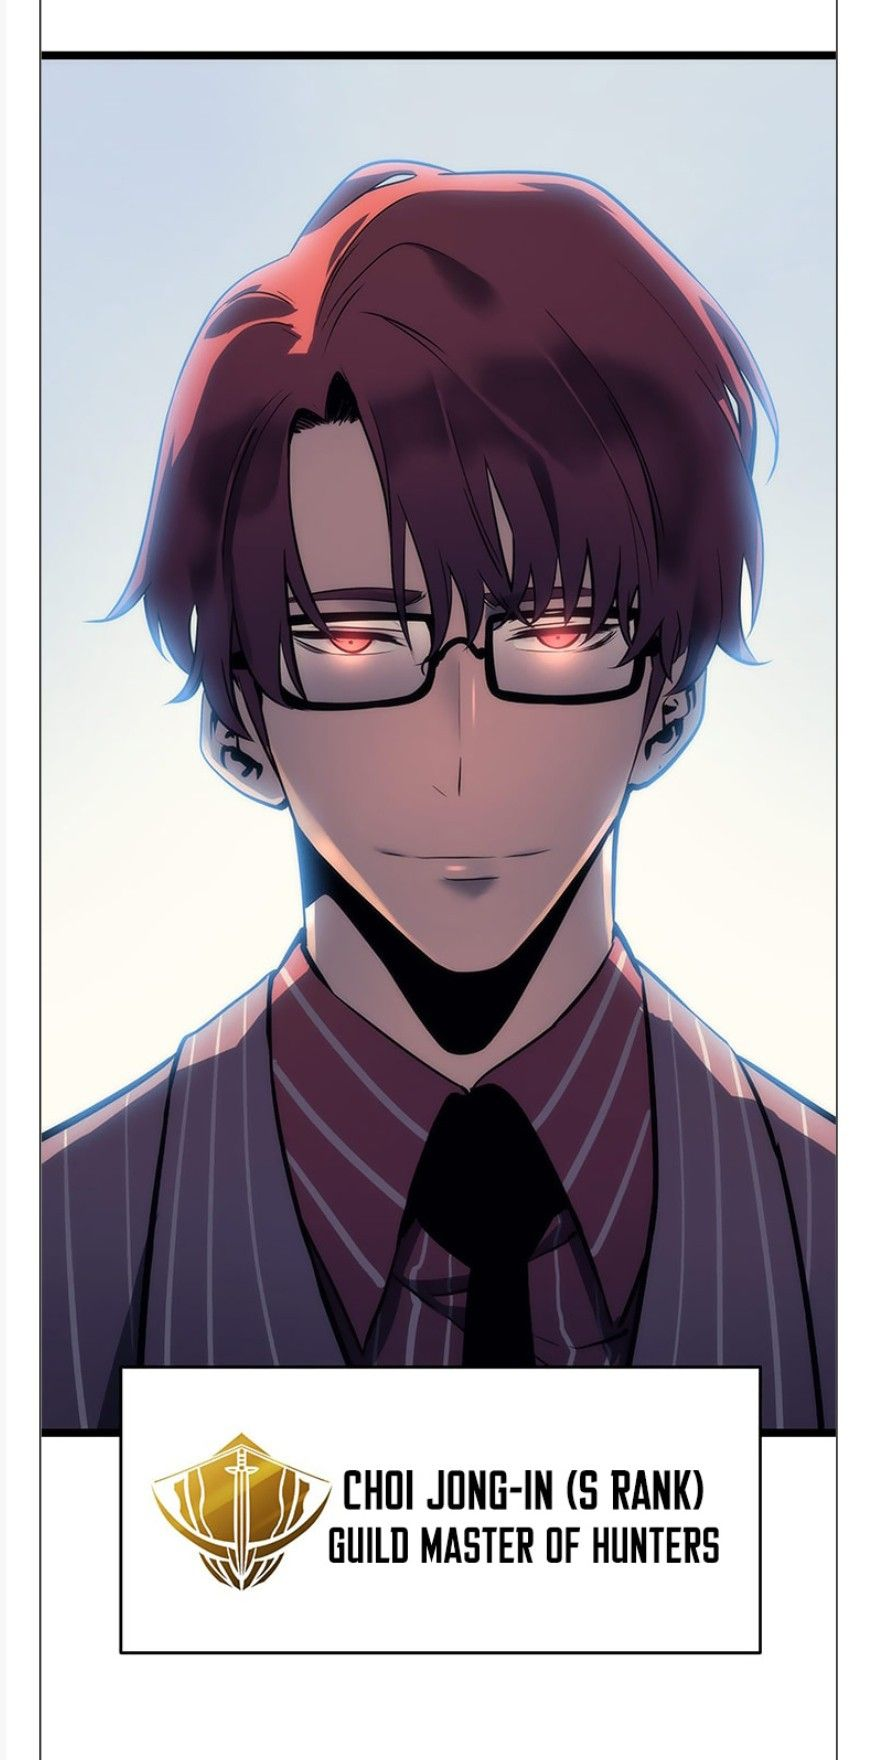 Solo Leveling in 2020 Anime, Manhwa, Poster